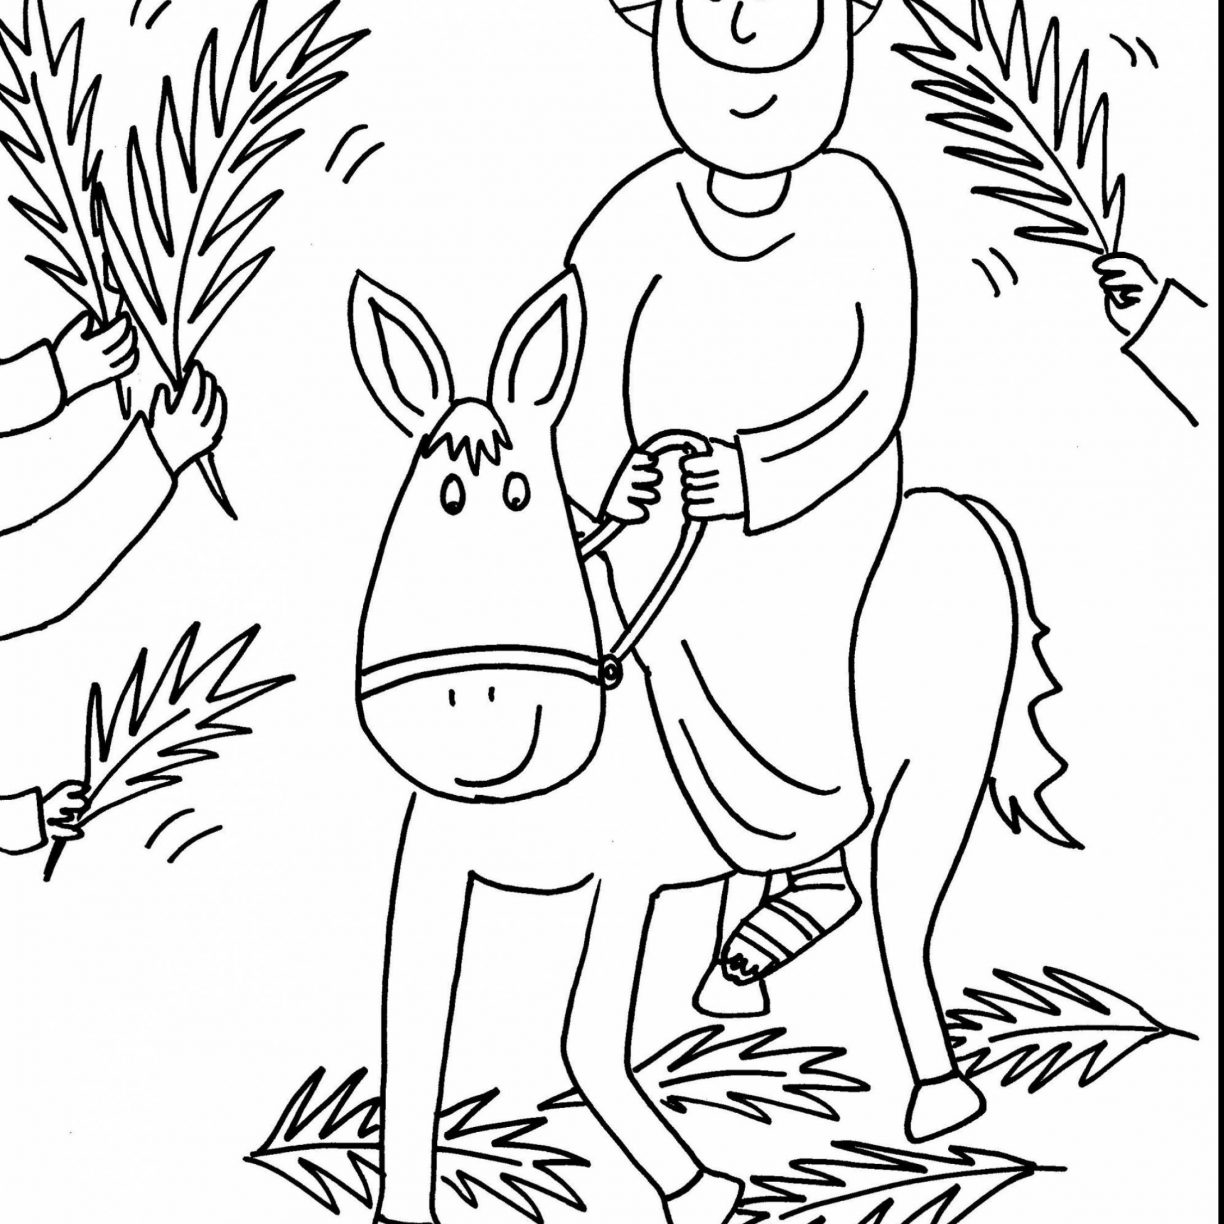 preschool christian coloring pages christian preschool coloring pages coloring home preschool christian pages coloring